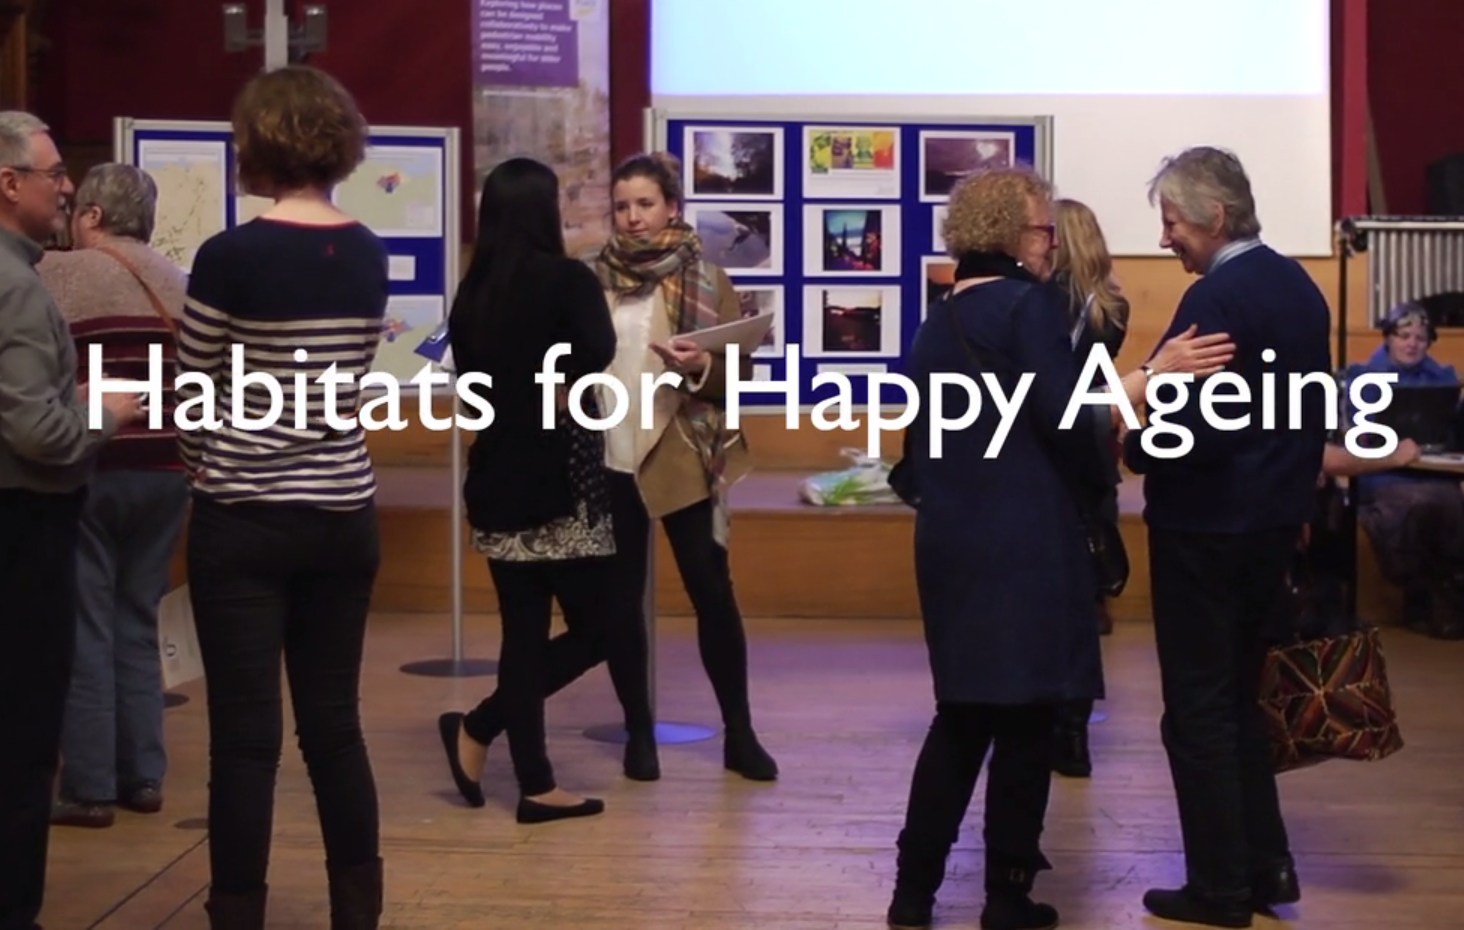 Screengrab from the trailer for Habitats for Happy Ageing